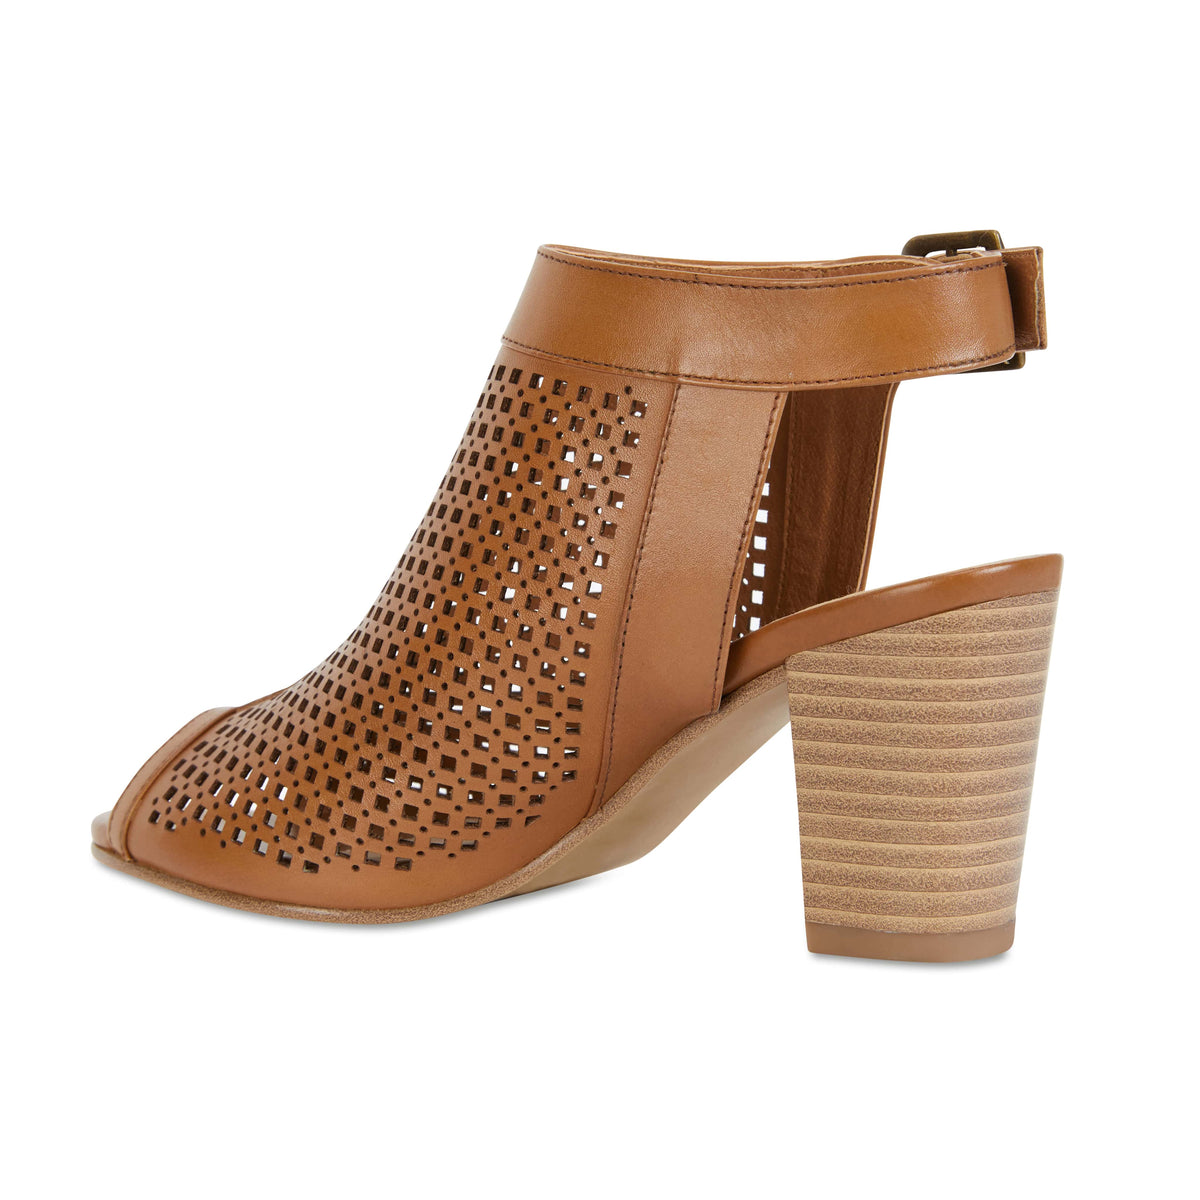 Billie Heel in Tan Leather